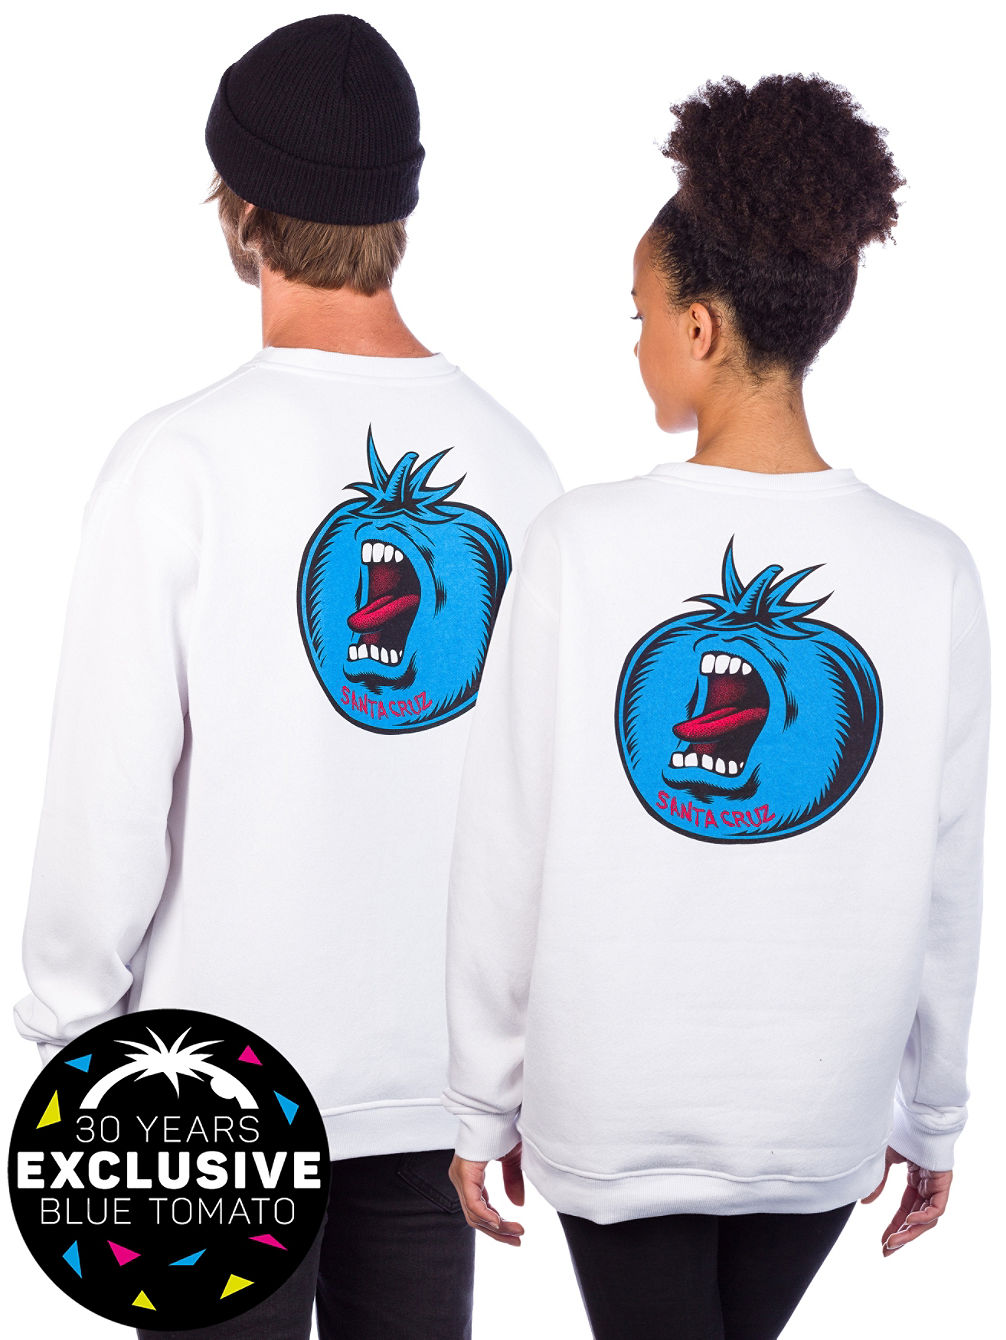 X Blue Tomato Screaming Crew Sweater